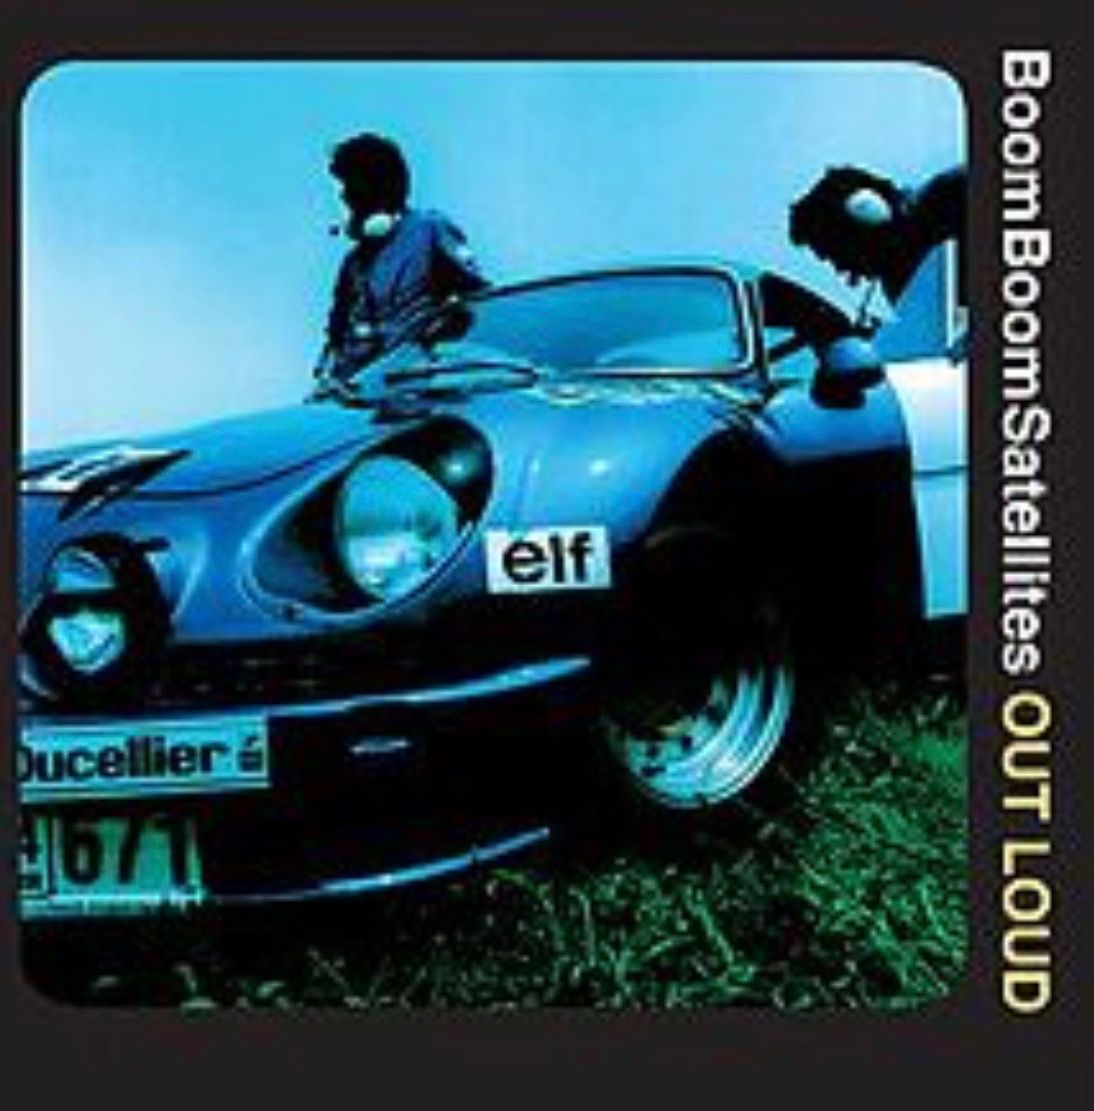 Pin by cleasby on car covers cars music album